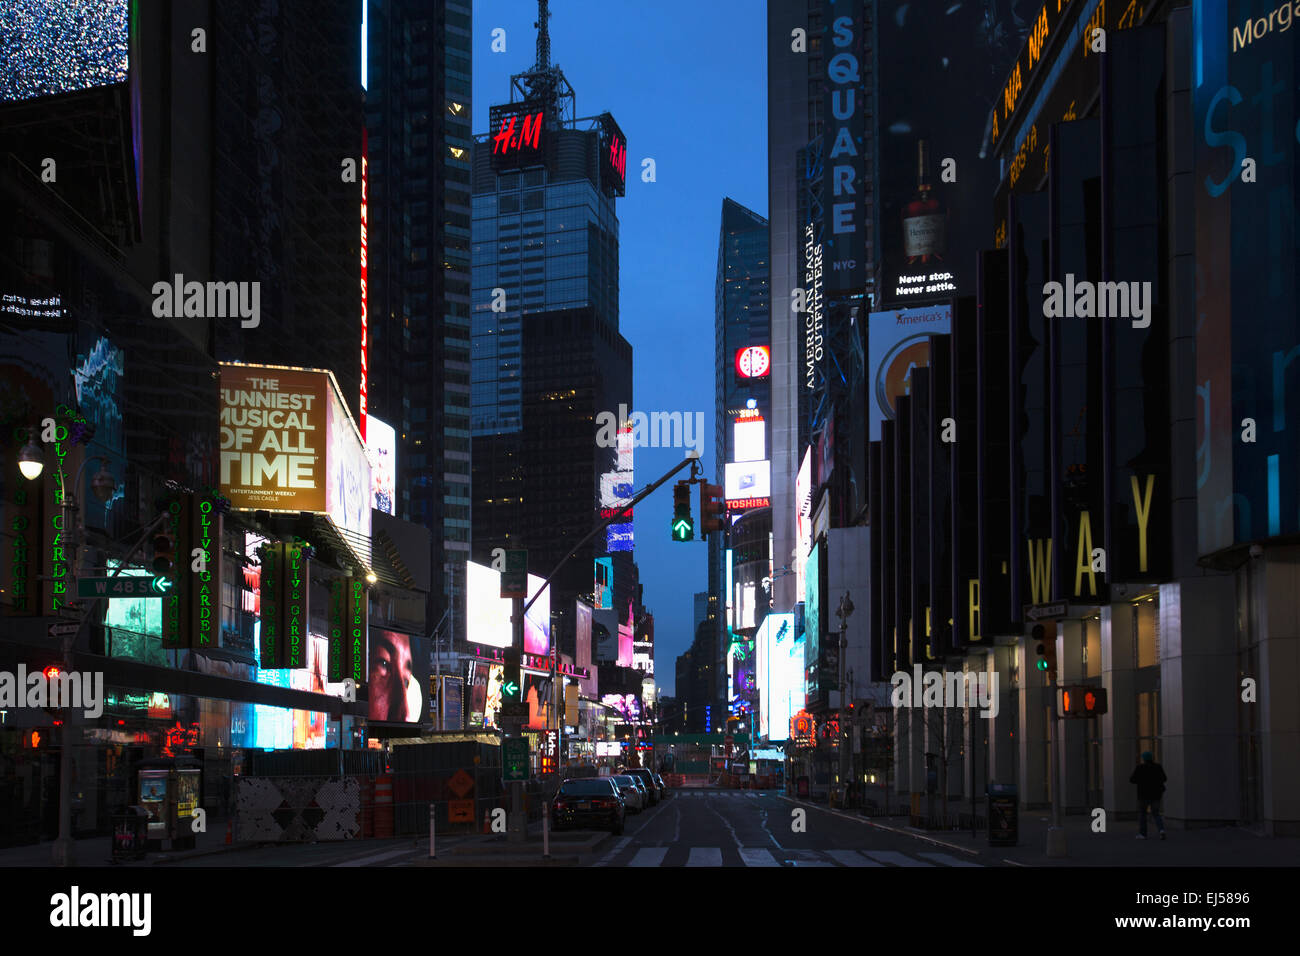 Broadway at dusk shows neon lights, New York, USA - Stock Image